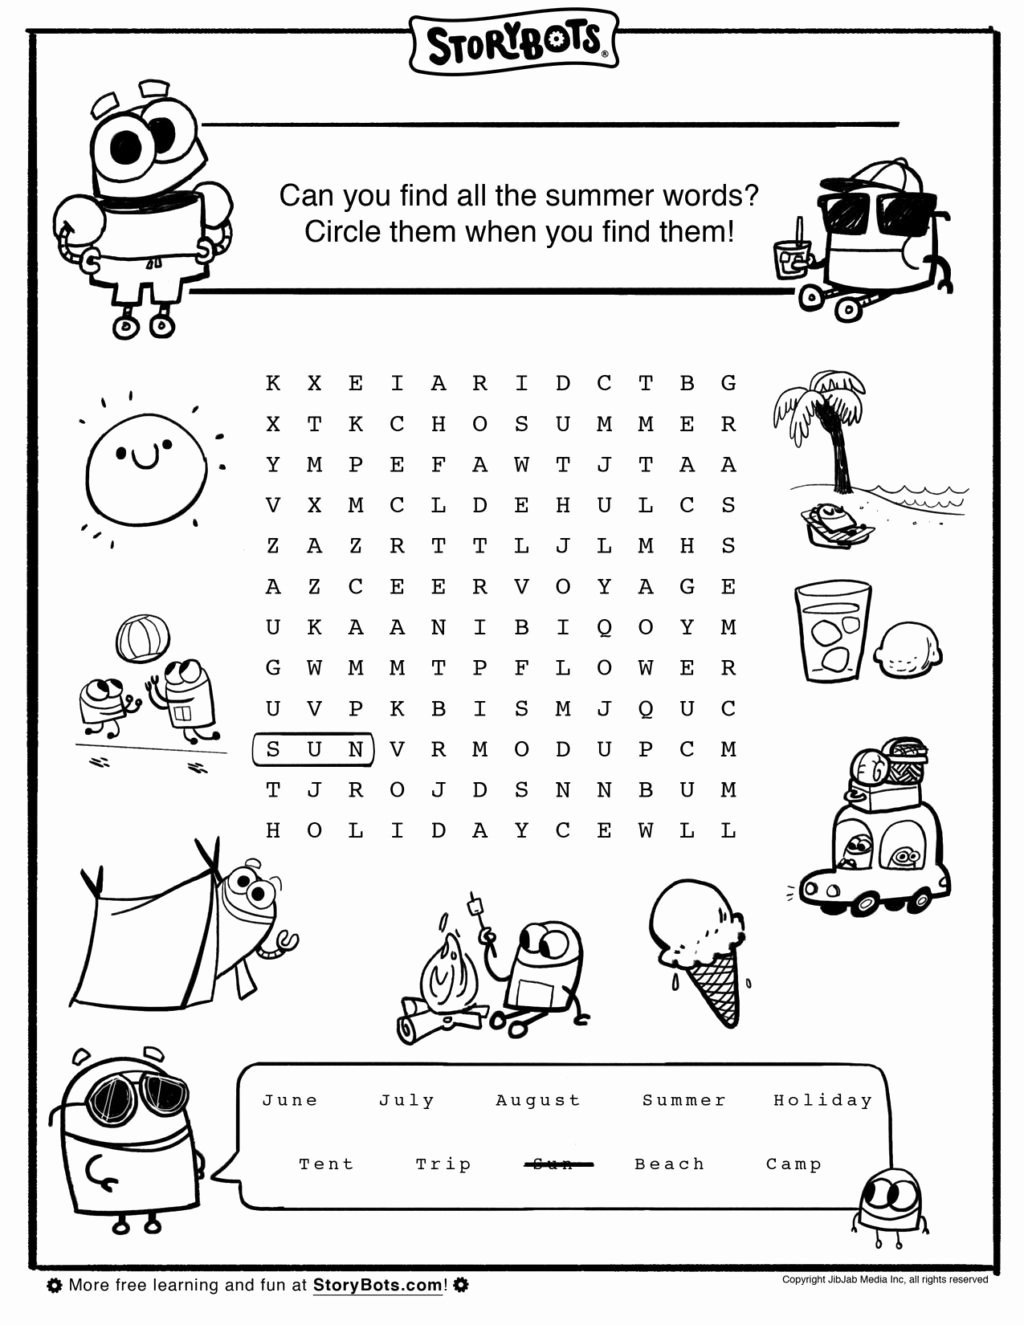 Free Printable Fire Safety Worksheets Kids Worksheet Worksheet Free Printable Kids Activity Sheets